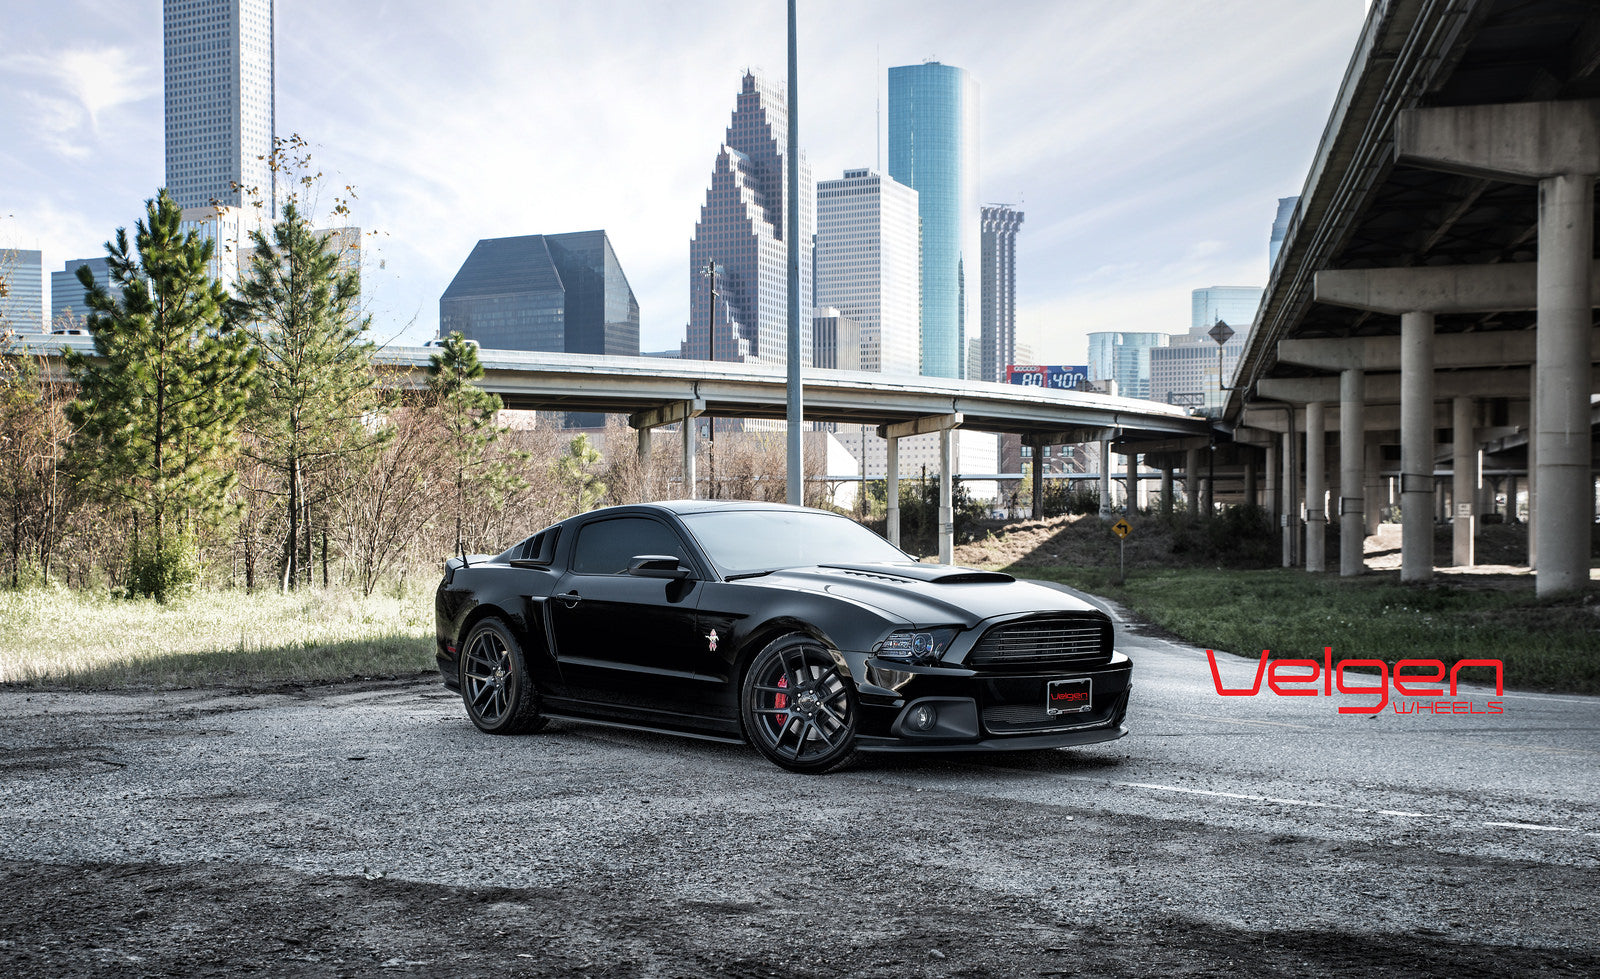 1-Ford Mustang GT 5.0 on Velgen Wheels